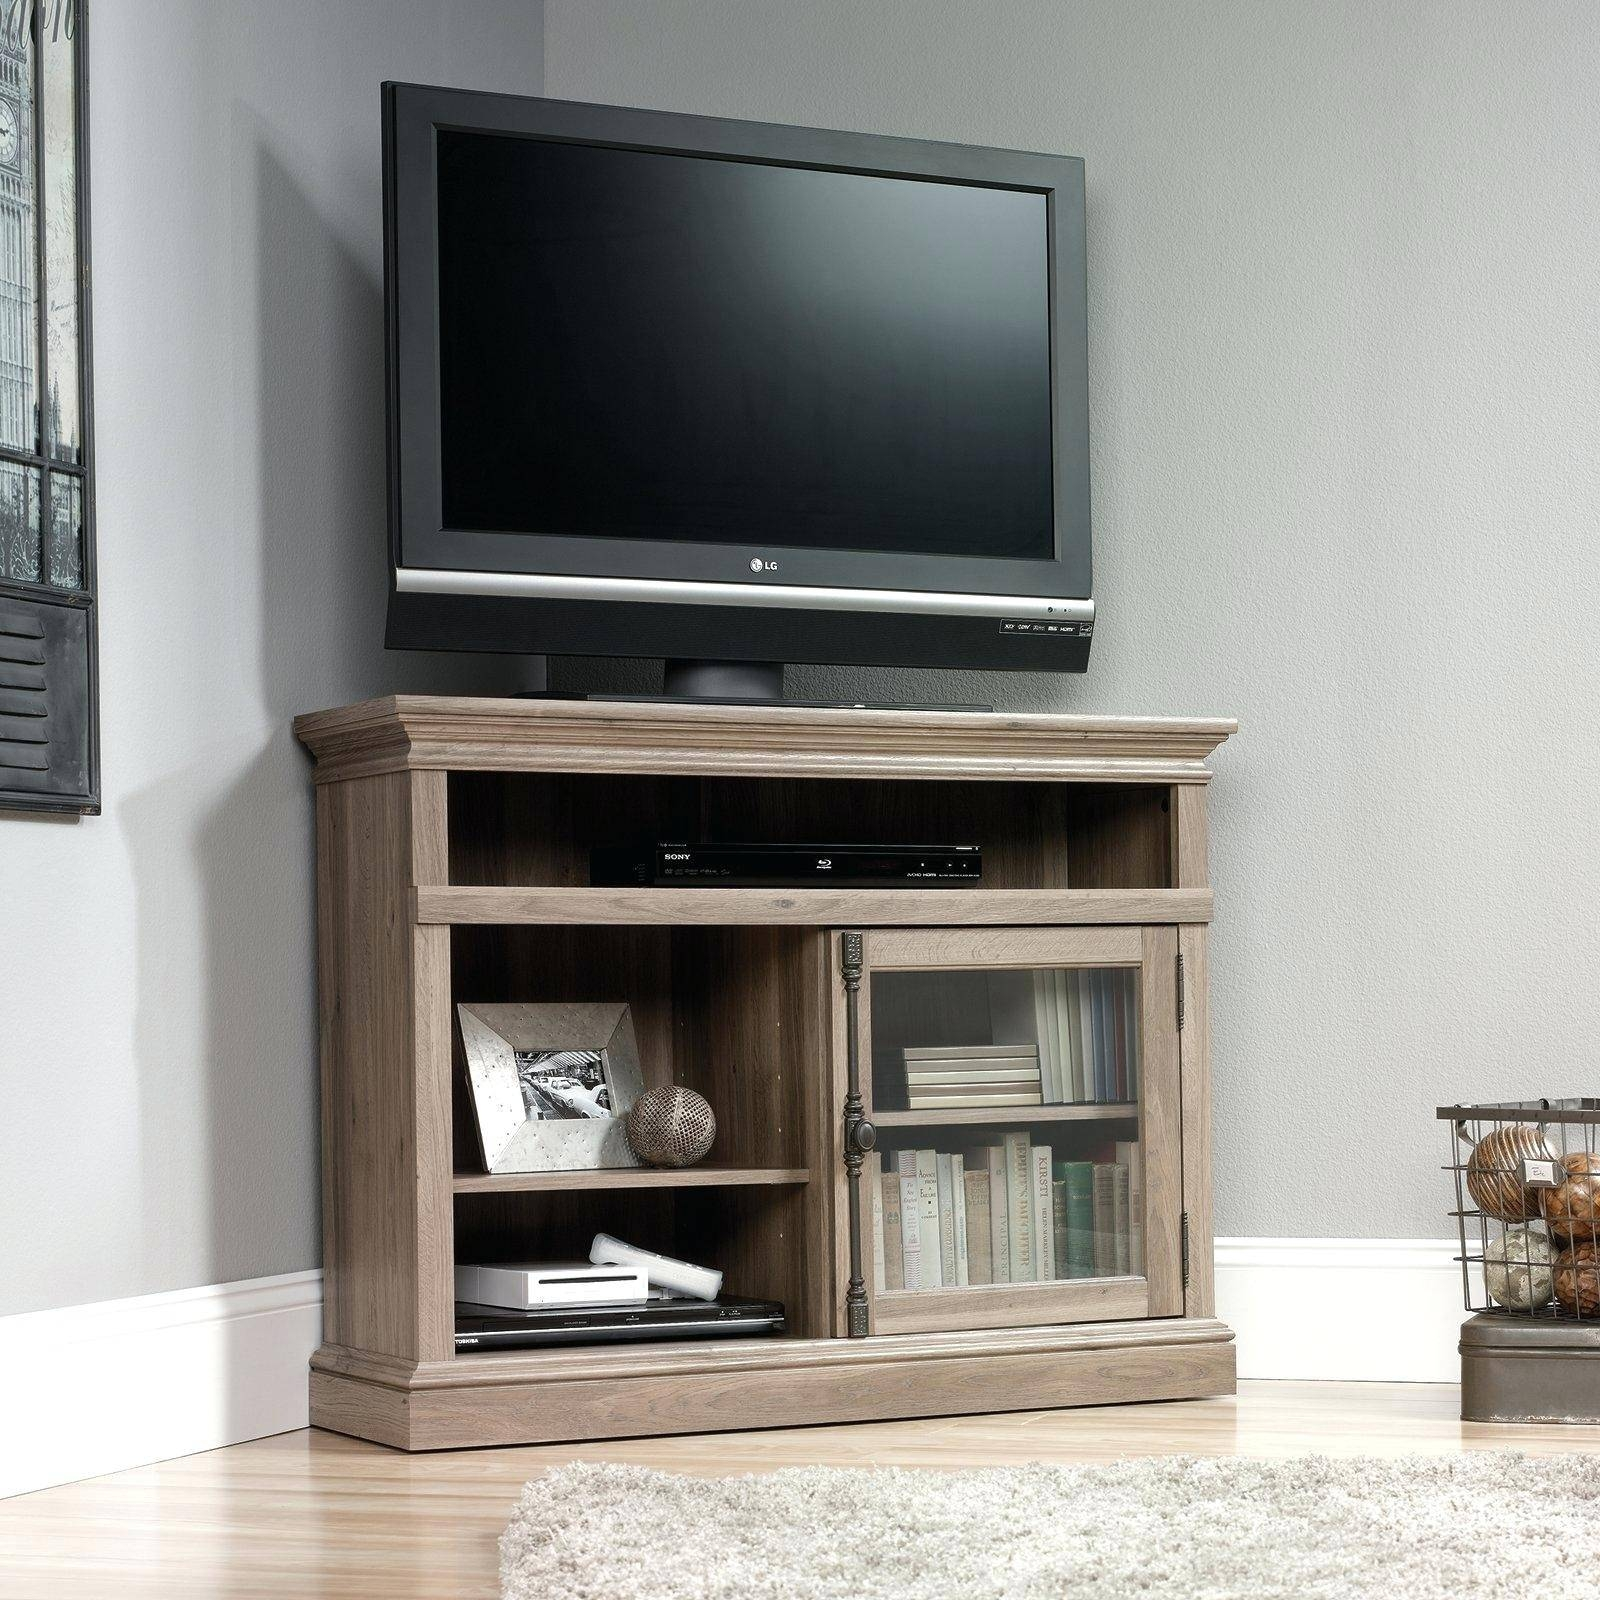 Tv Stand: Winsome Bedford Corner Tv Stand Design. Tv Stand Design for Bedford Tv Stands (Image 14 of 15)